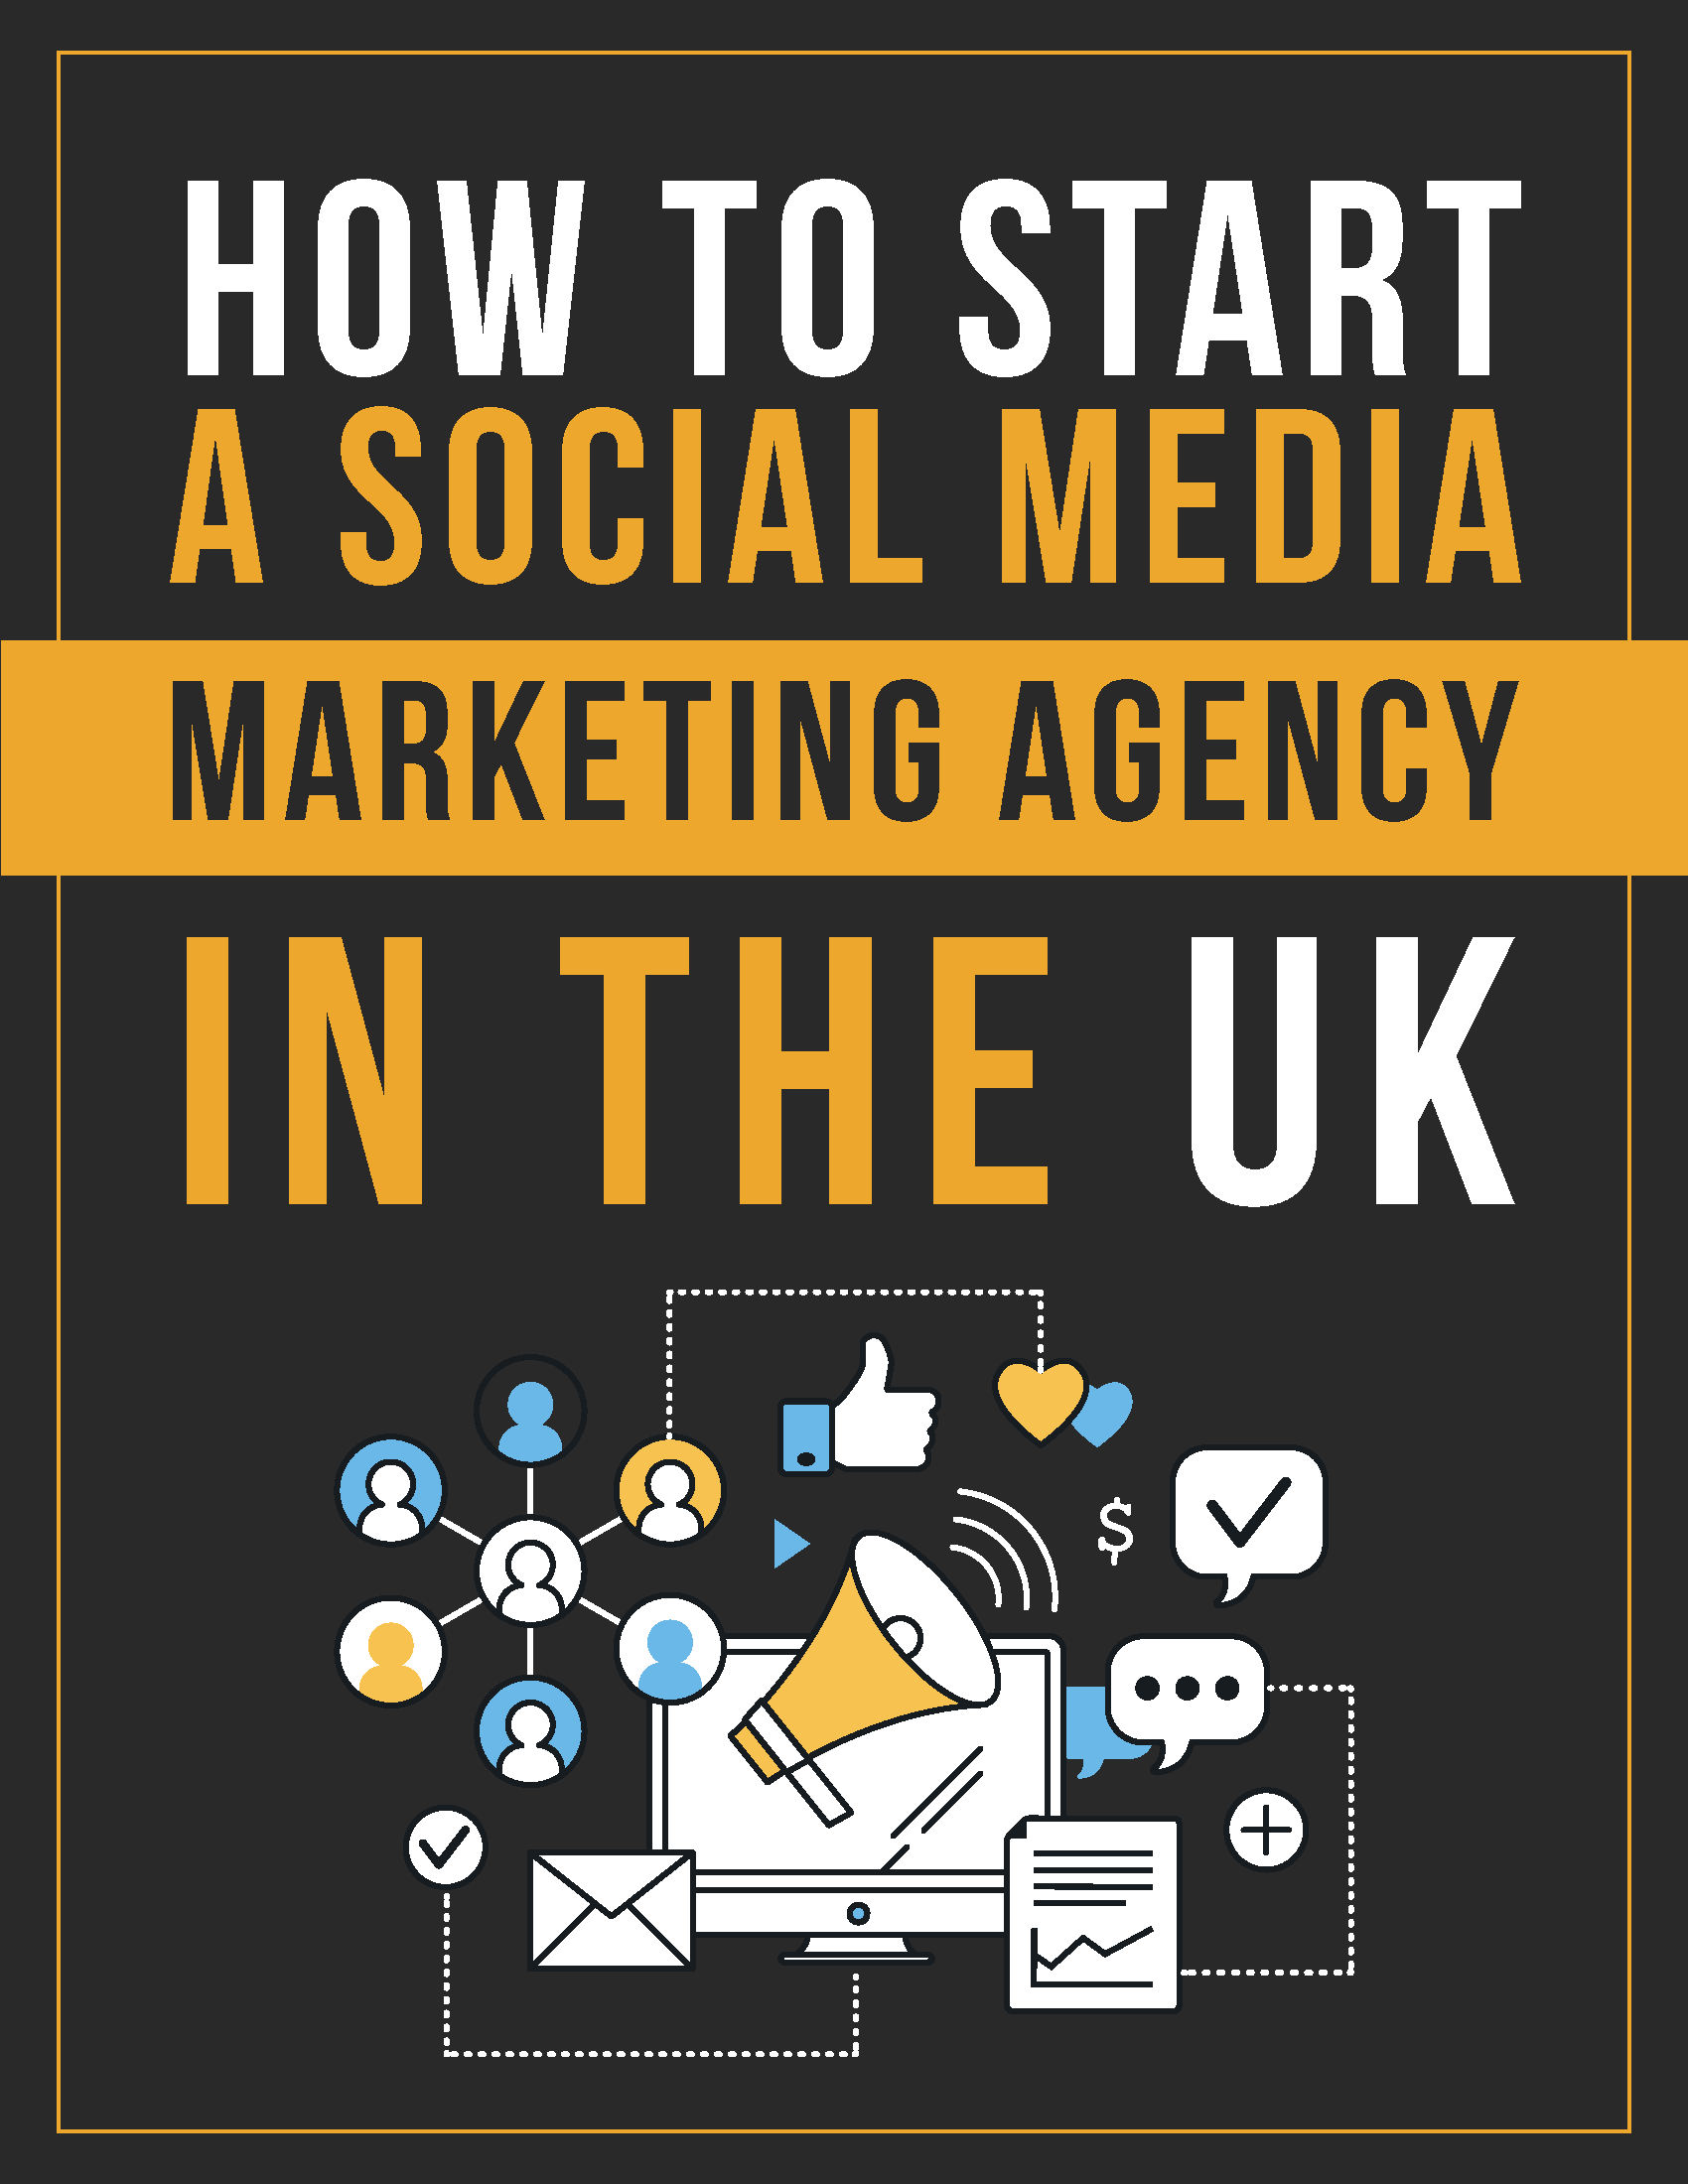 How to start a social media marketing agency ebook cover